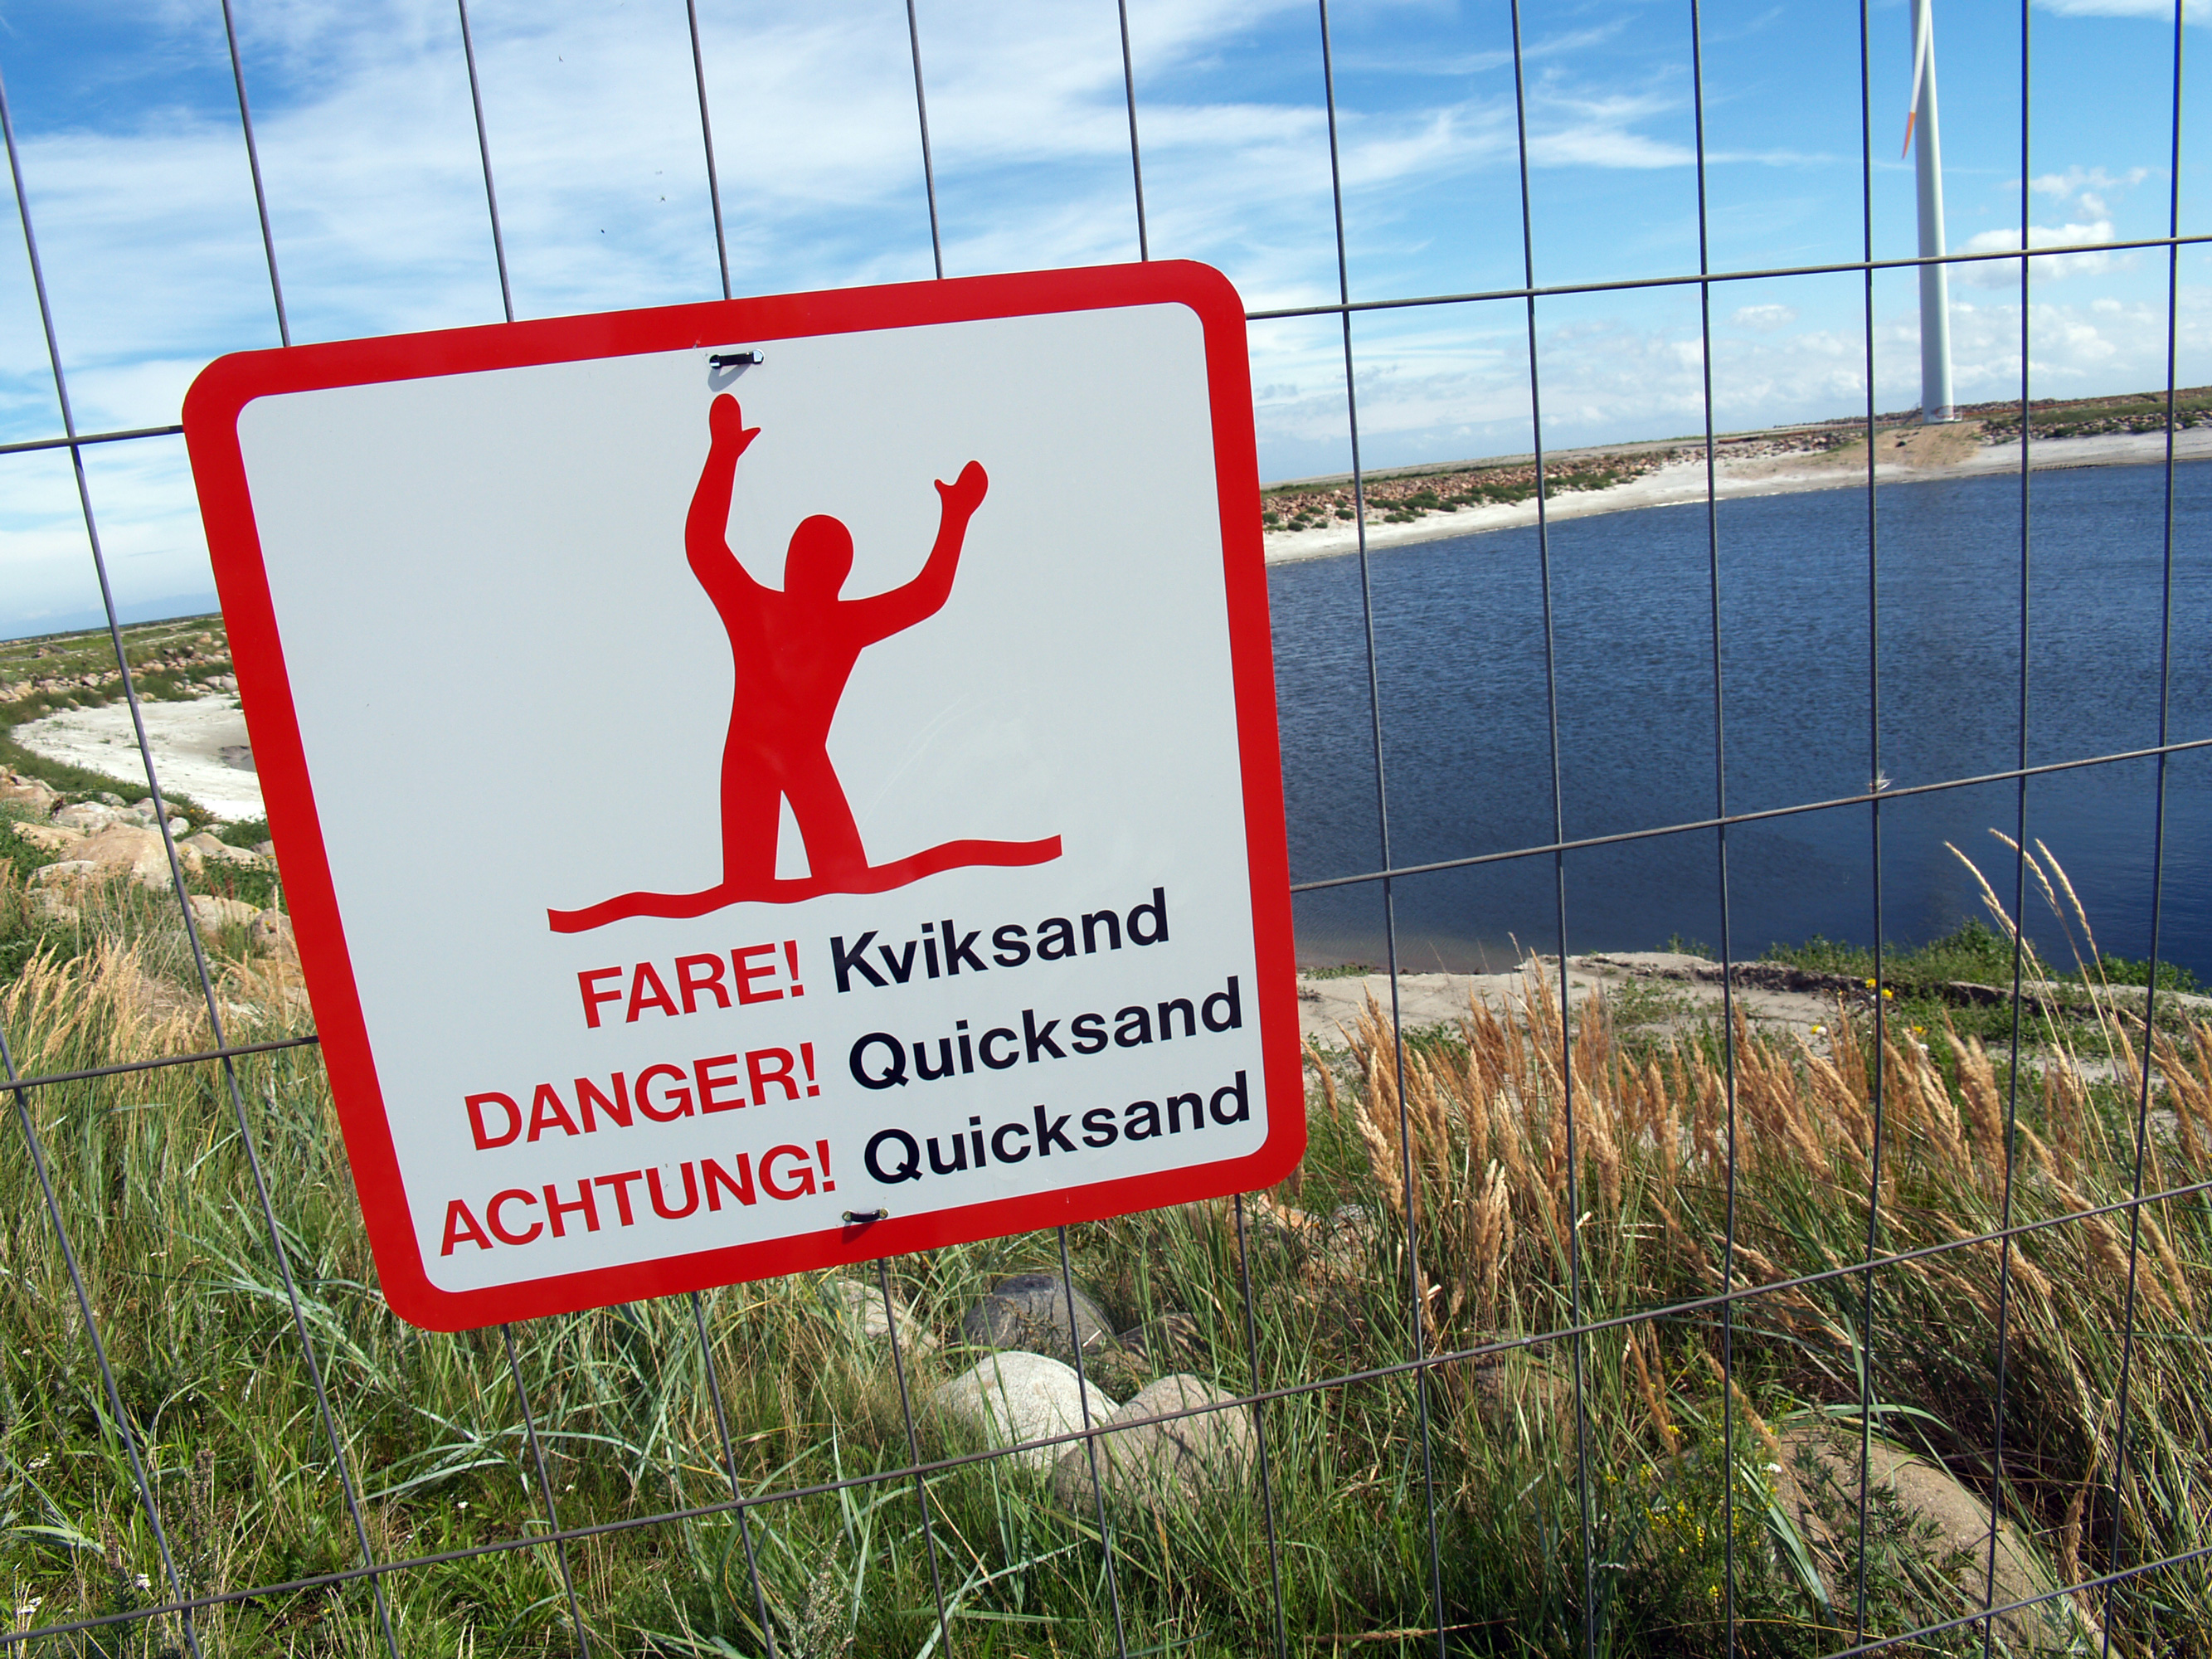 File:Quicksand-warning-sign-denmark-2010.jpg - Wikimedia Commons